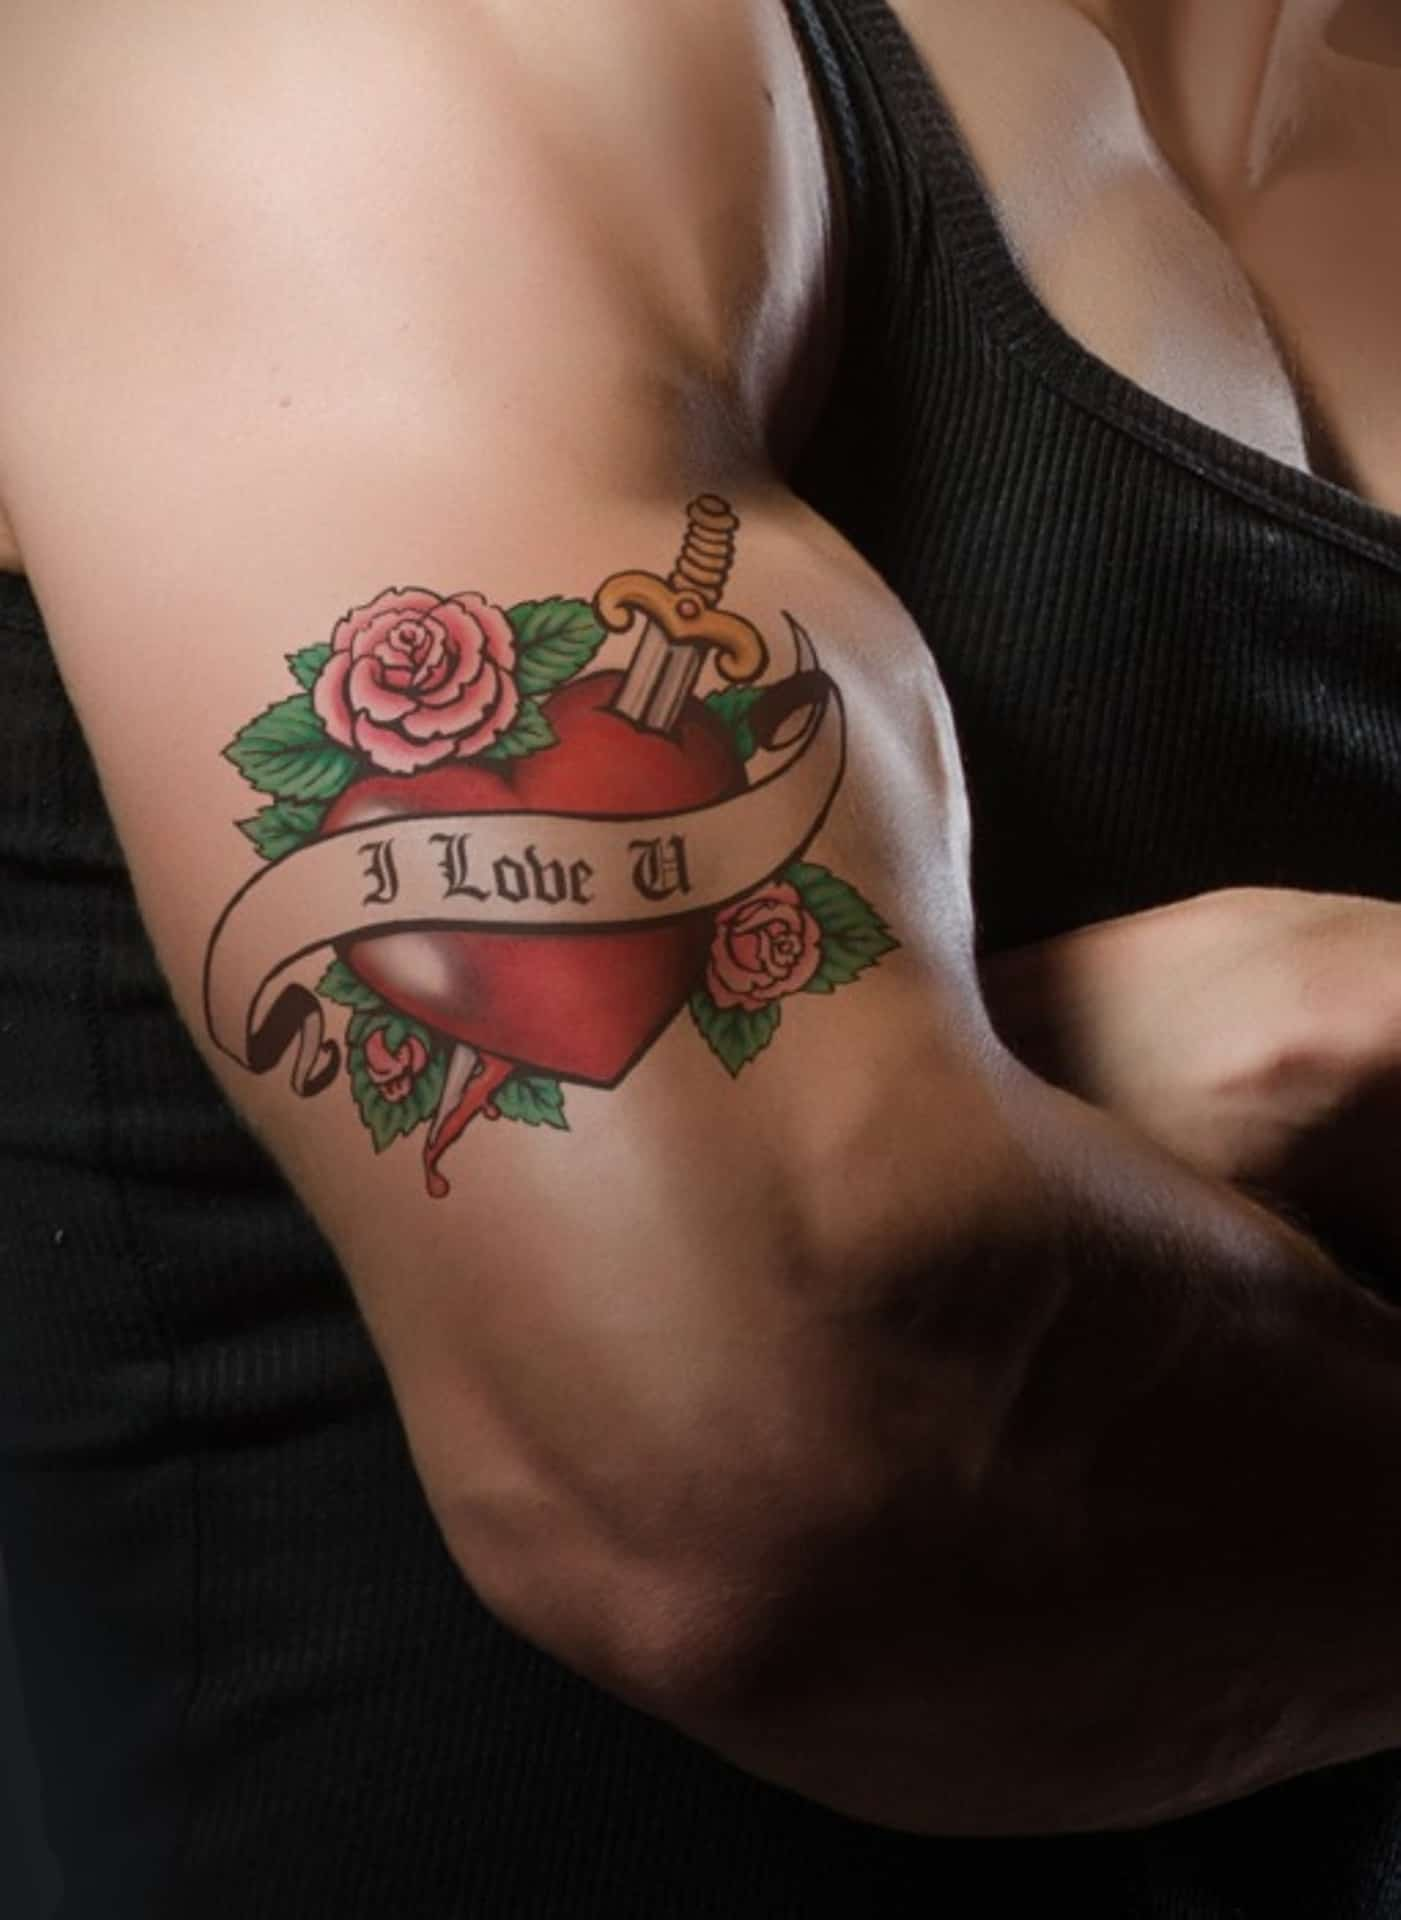 Bicep Tattoo - Things To Know Before Getting One